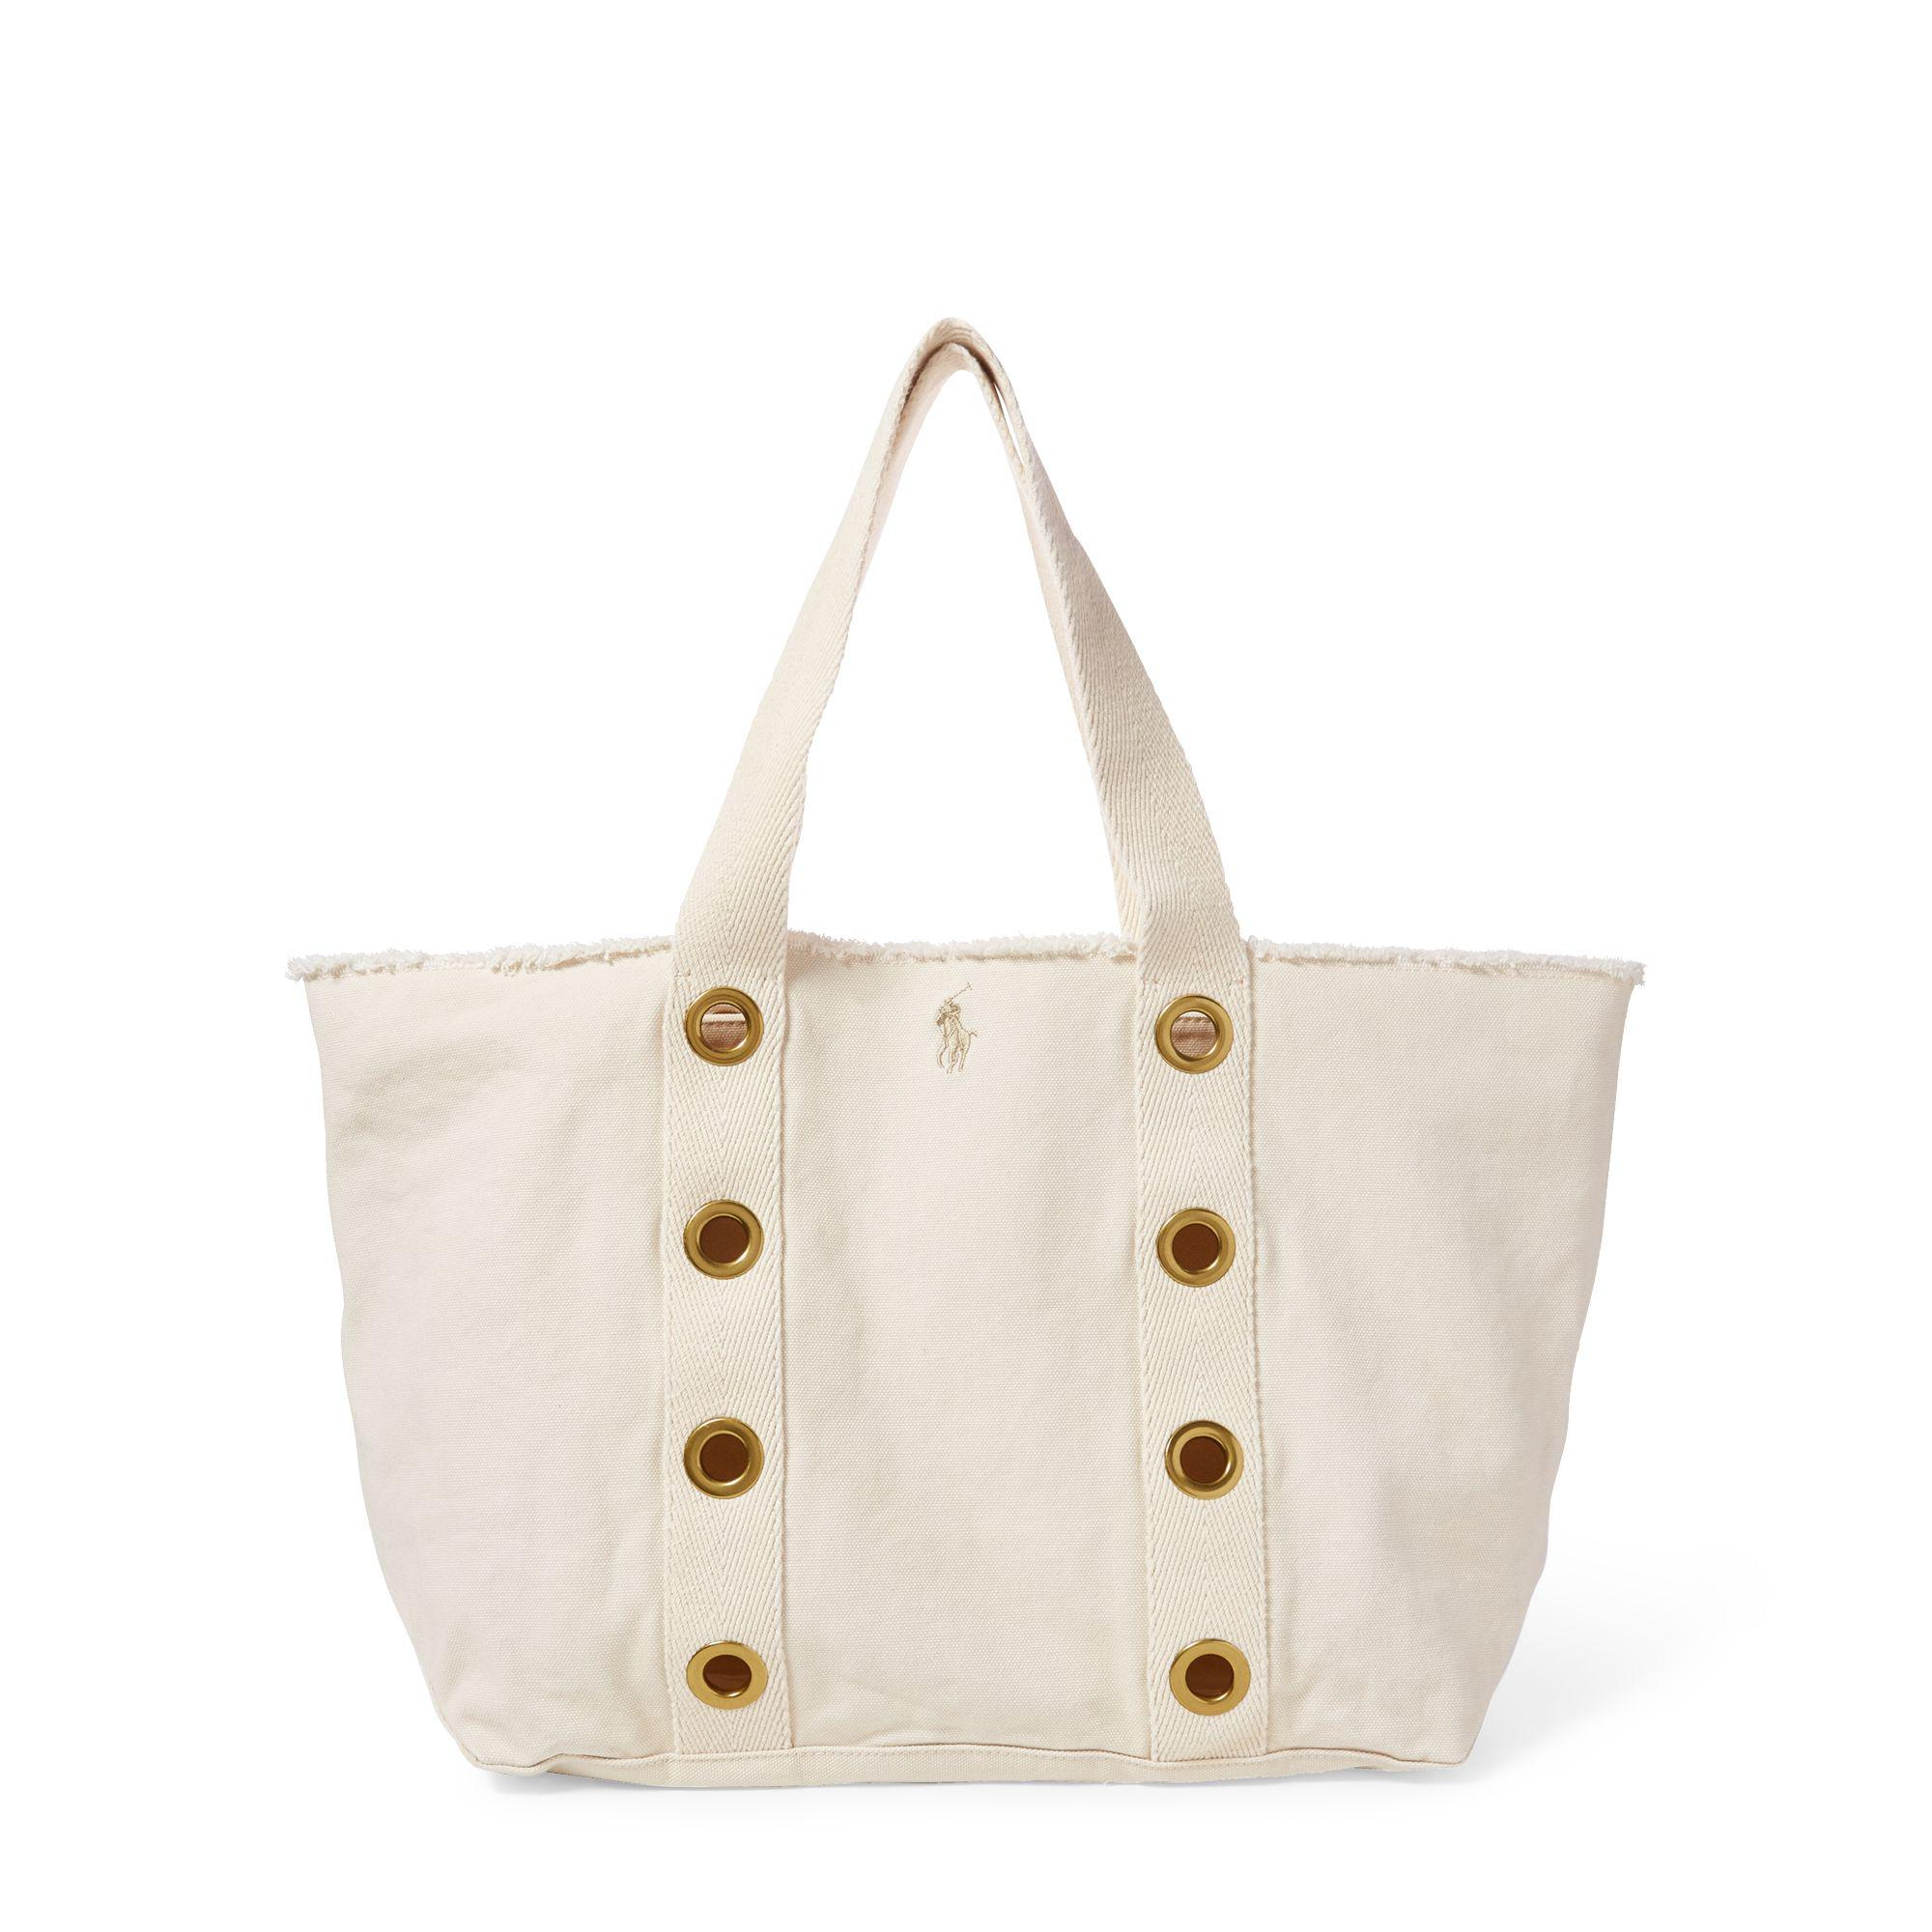 Lyst - Polo Ralph Lauren Grommet-trim Large Canvas Tote in Natural a11164129bb72